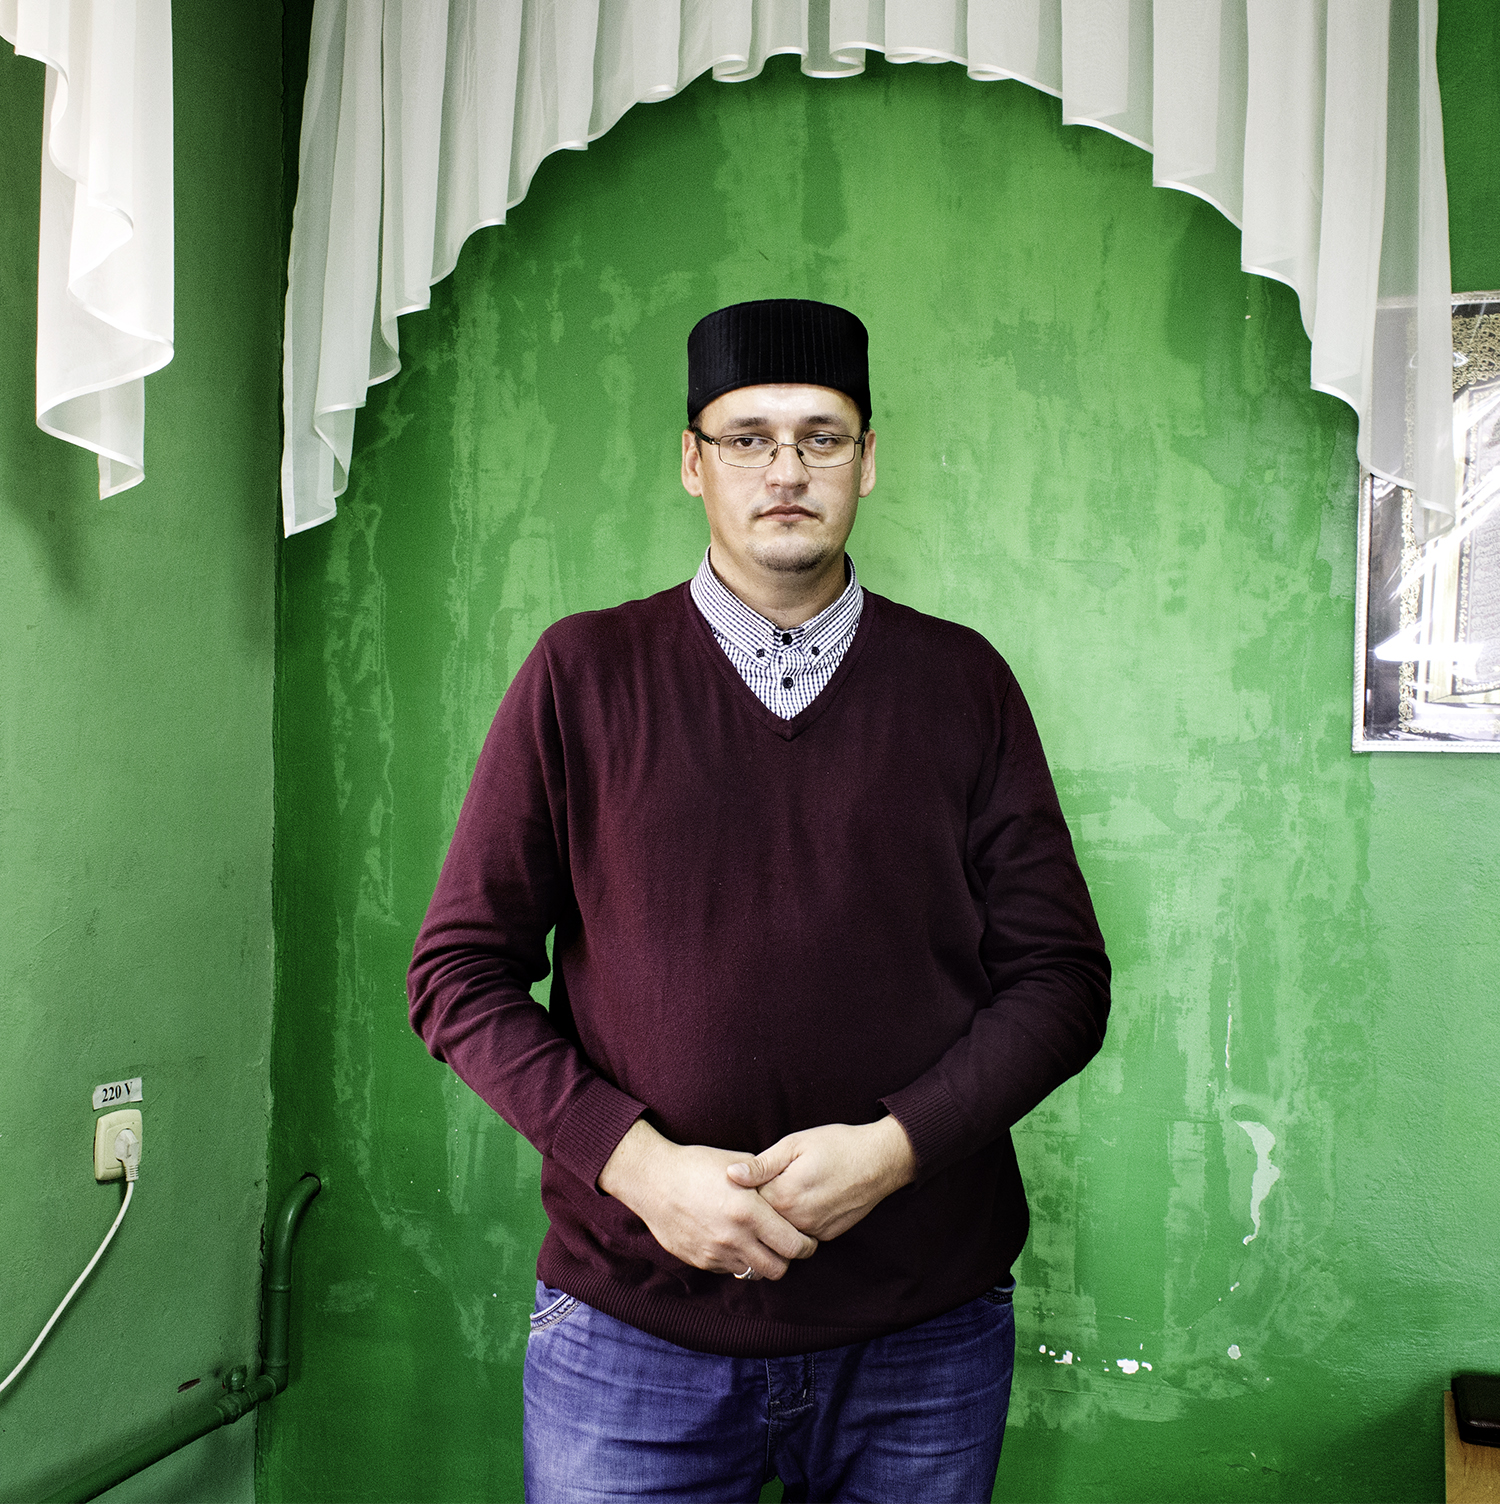 """Sulfat Gabdullin, director at Kazan's first madrasa Muhammadiya: """"The madrasa is the happiest and best place in the world. There is no other. For 1000 years we are a combination of different people. It's in our genes to get on.We have very cold winter, we need a lot of warmth between people. Its our religious duty to stay in dialogue with all."""""""